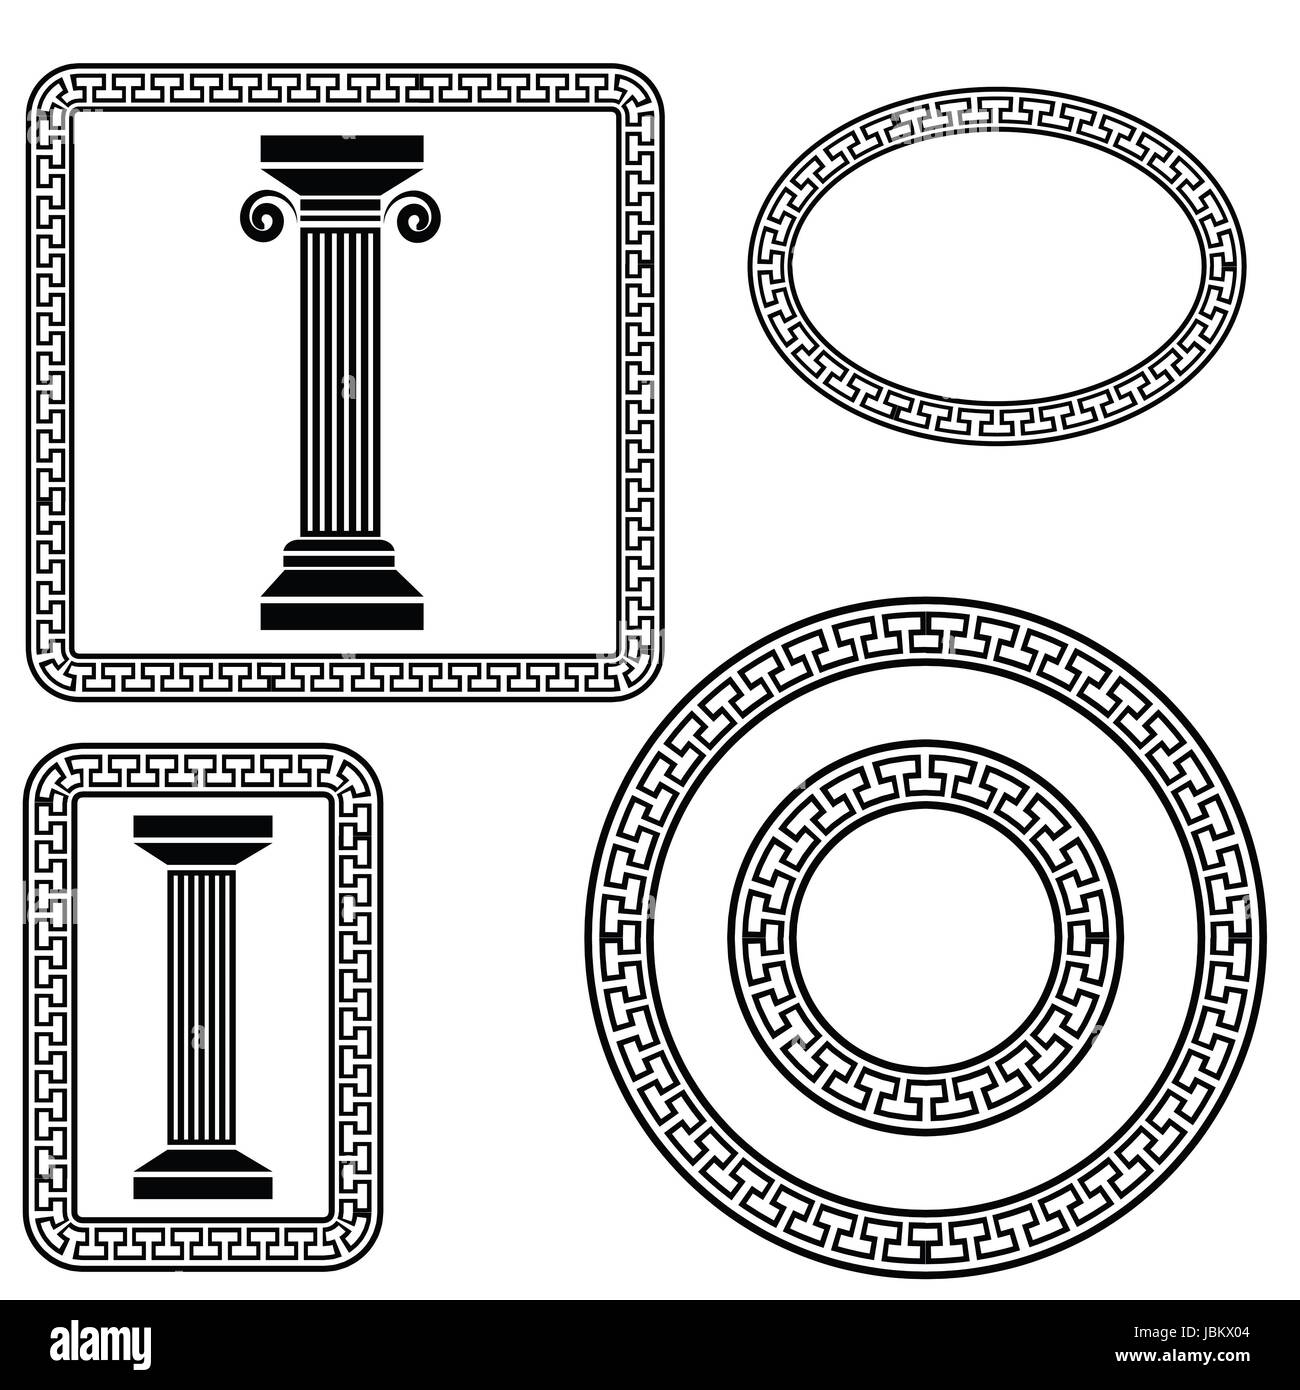 Colorful illustration with greek symbols on a white background for colorful illustration with greek symbols on a white background for your design buycottarizona